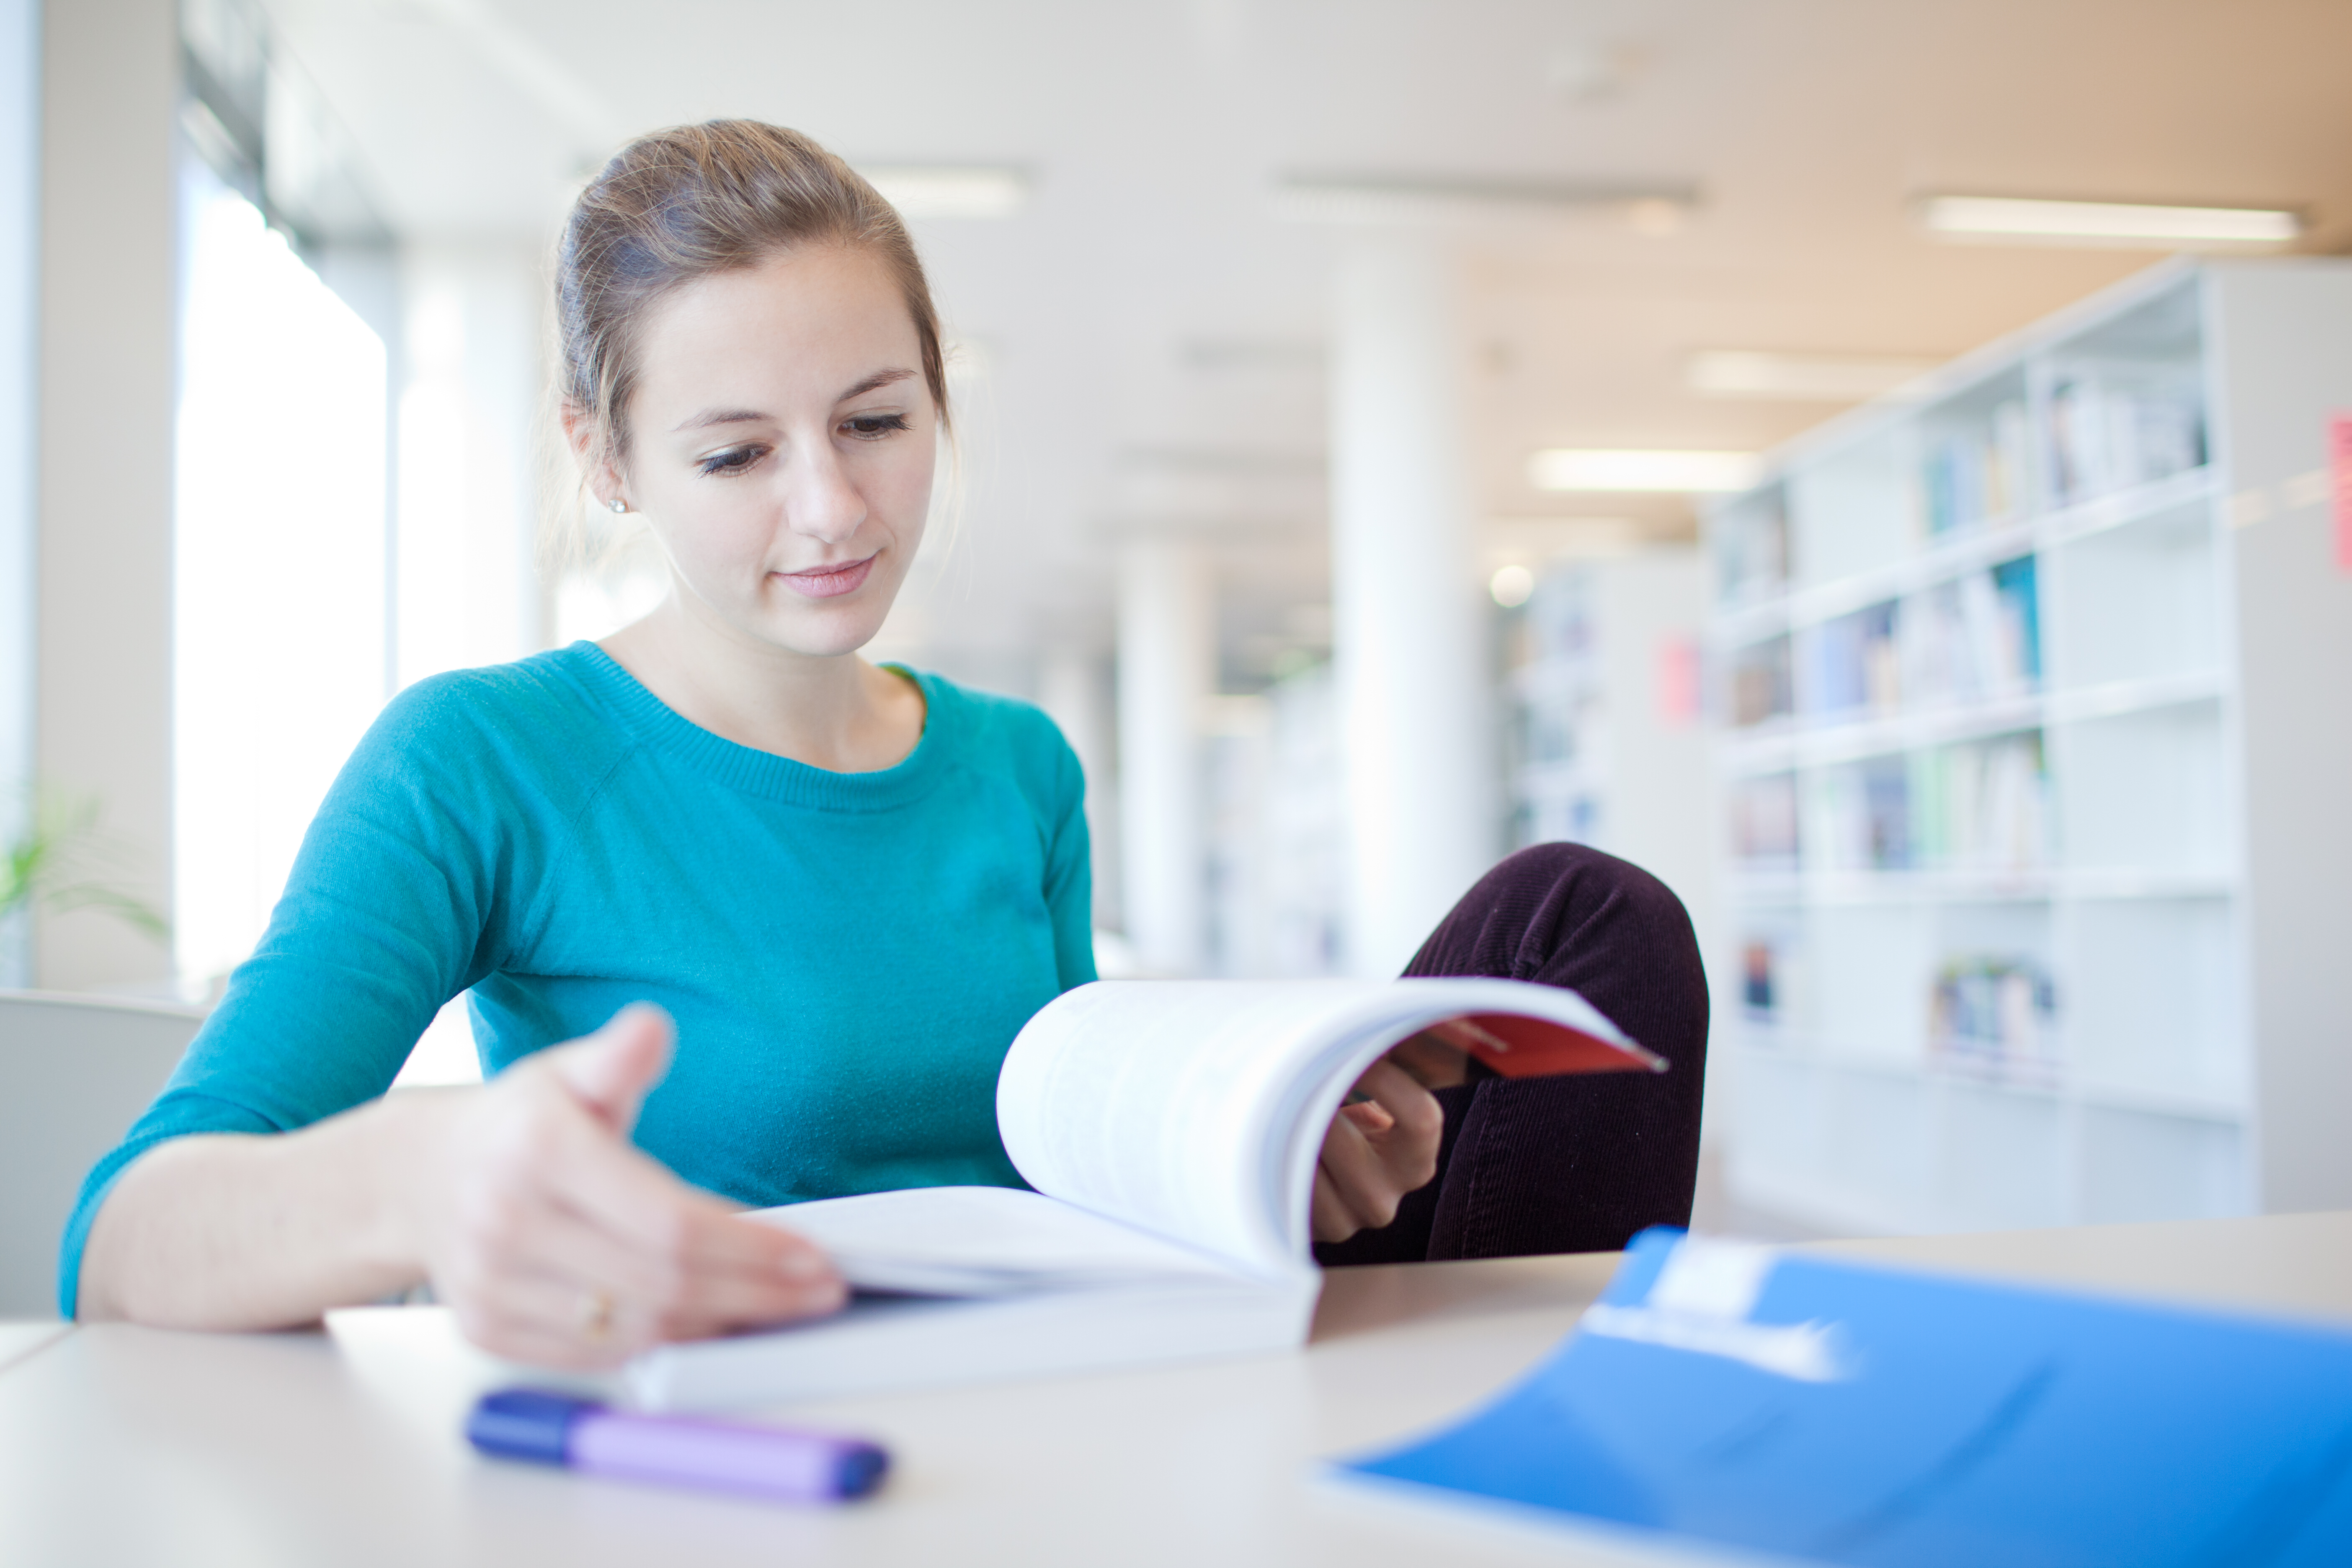 How to write a great assessment